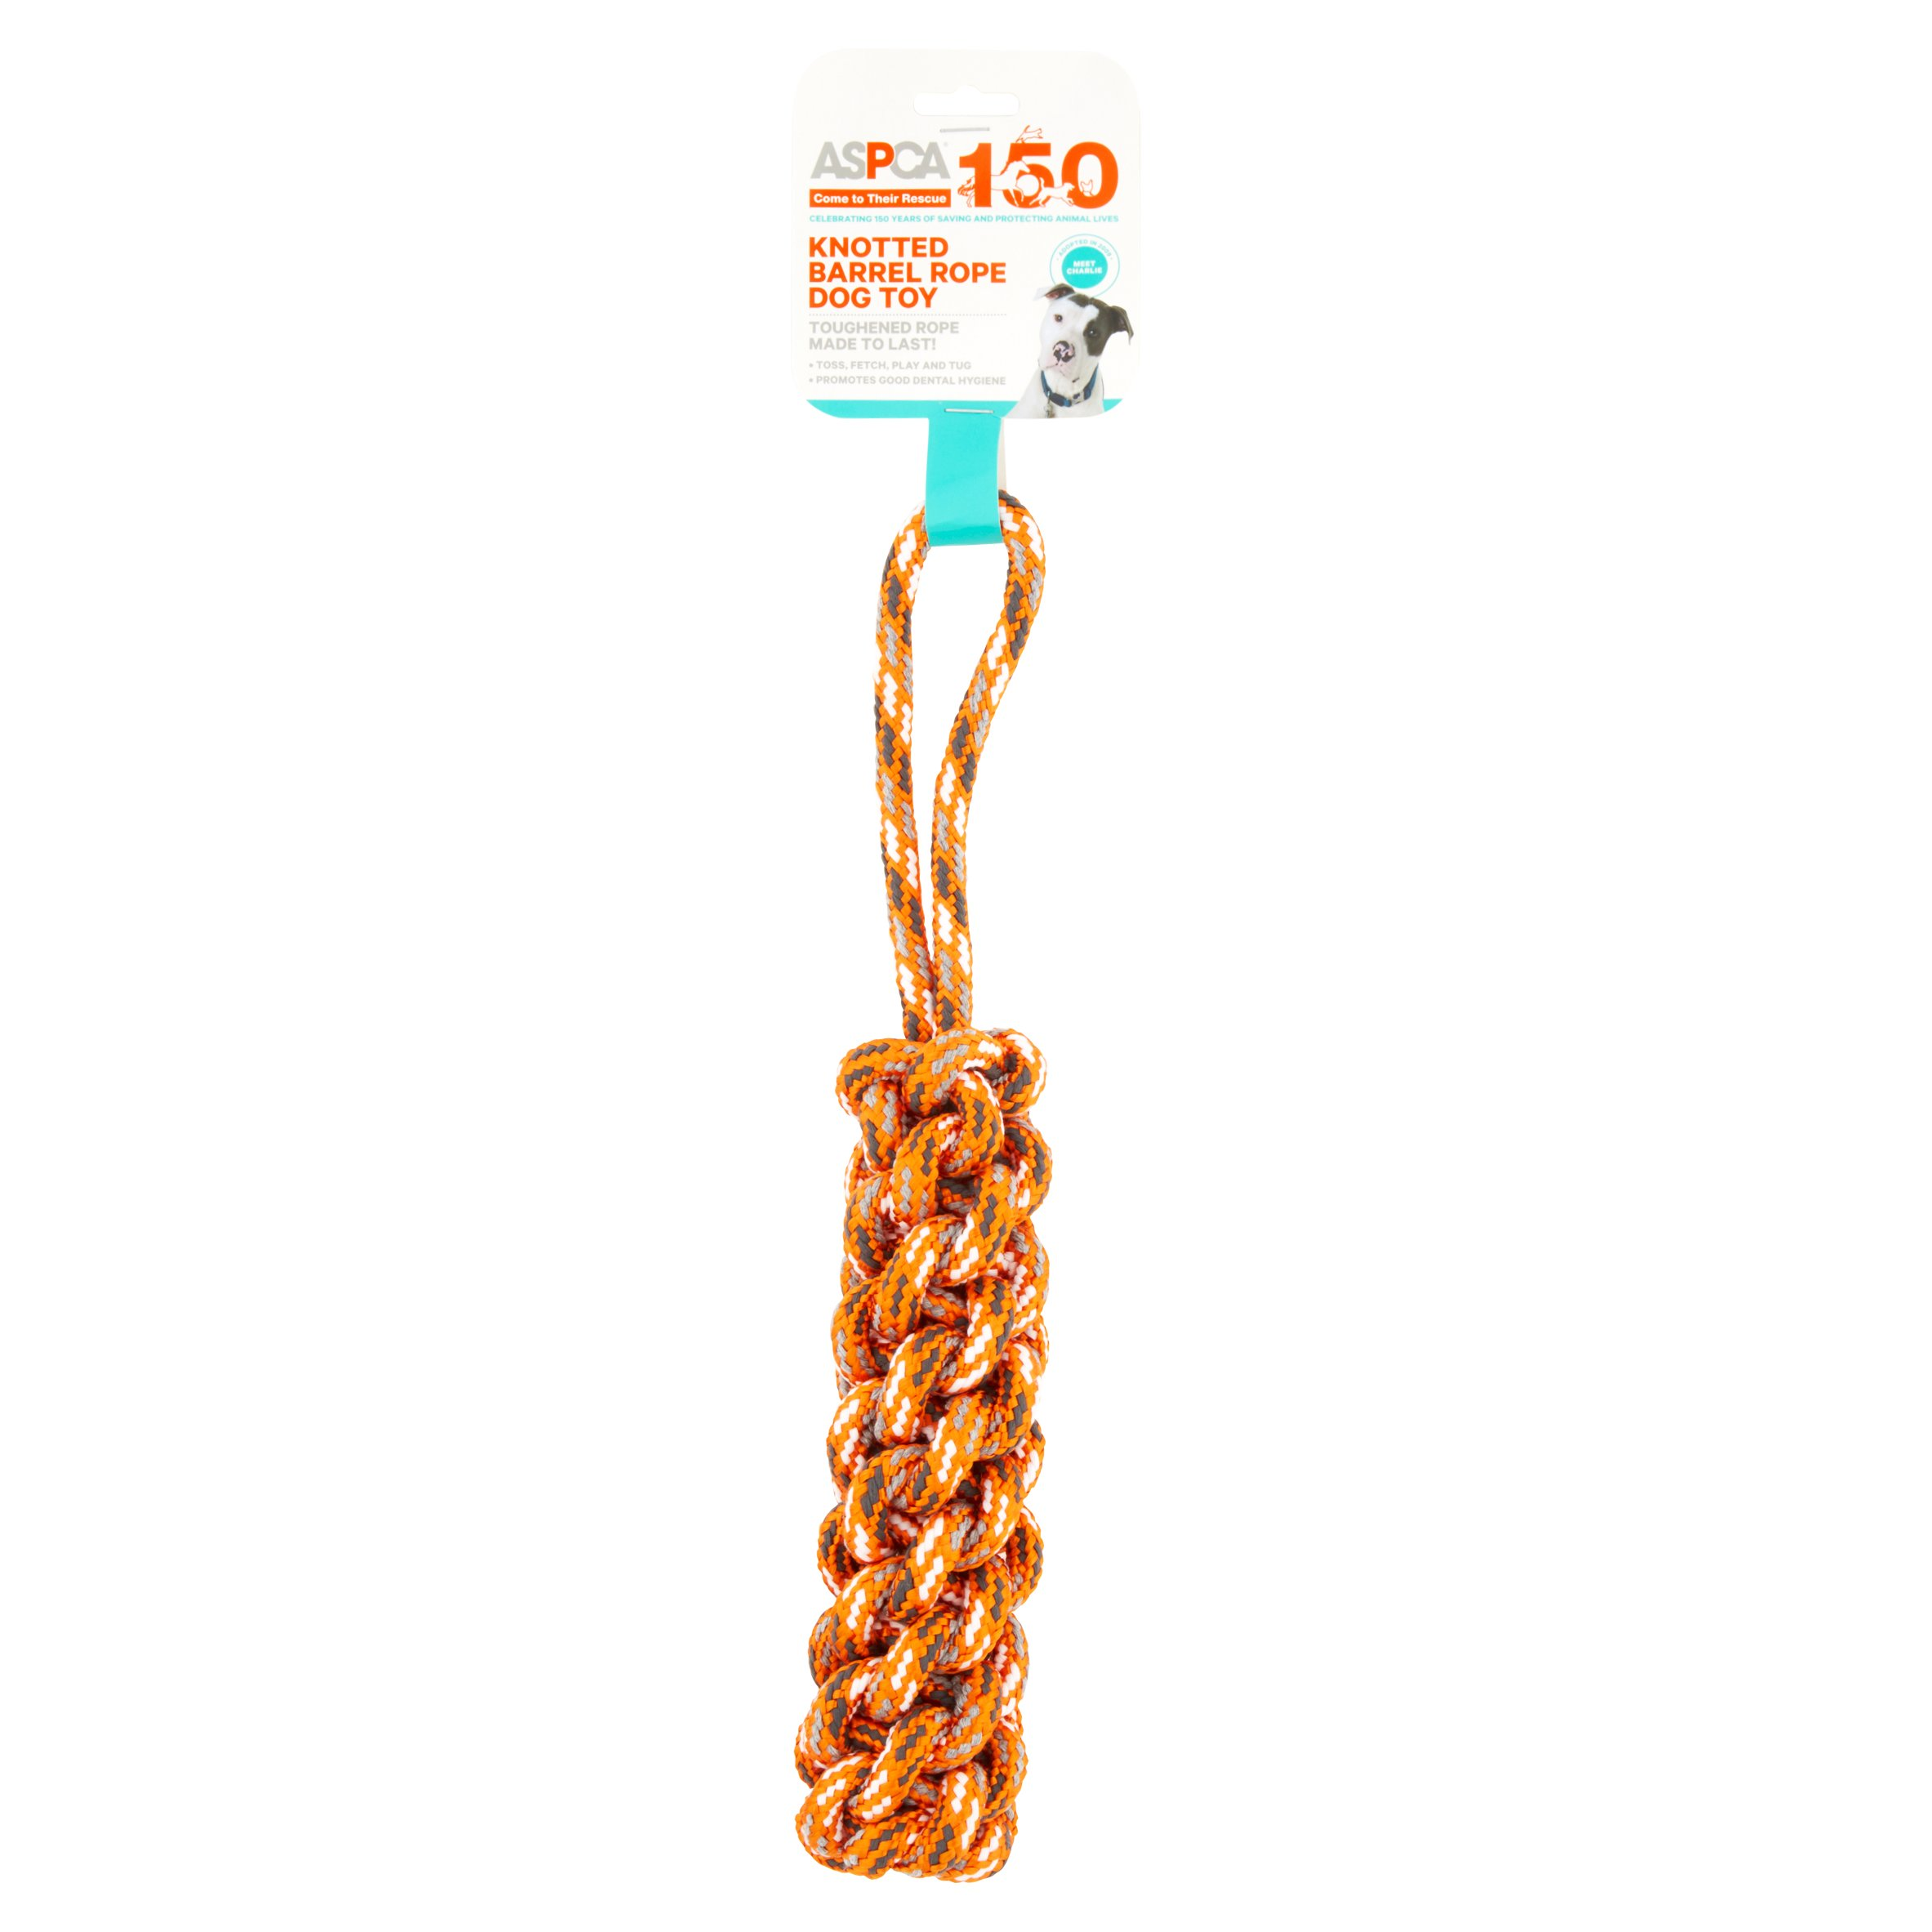 ASPCA Blue Knotted Barrel Rope Dog Toy by European Home Designs, LLC